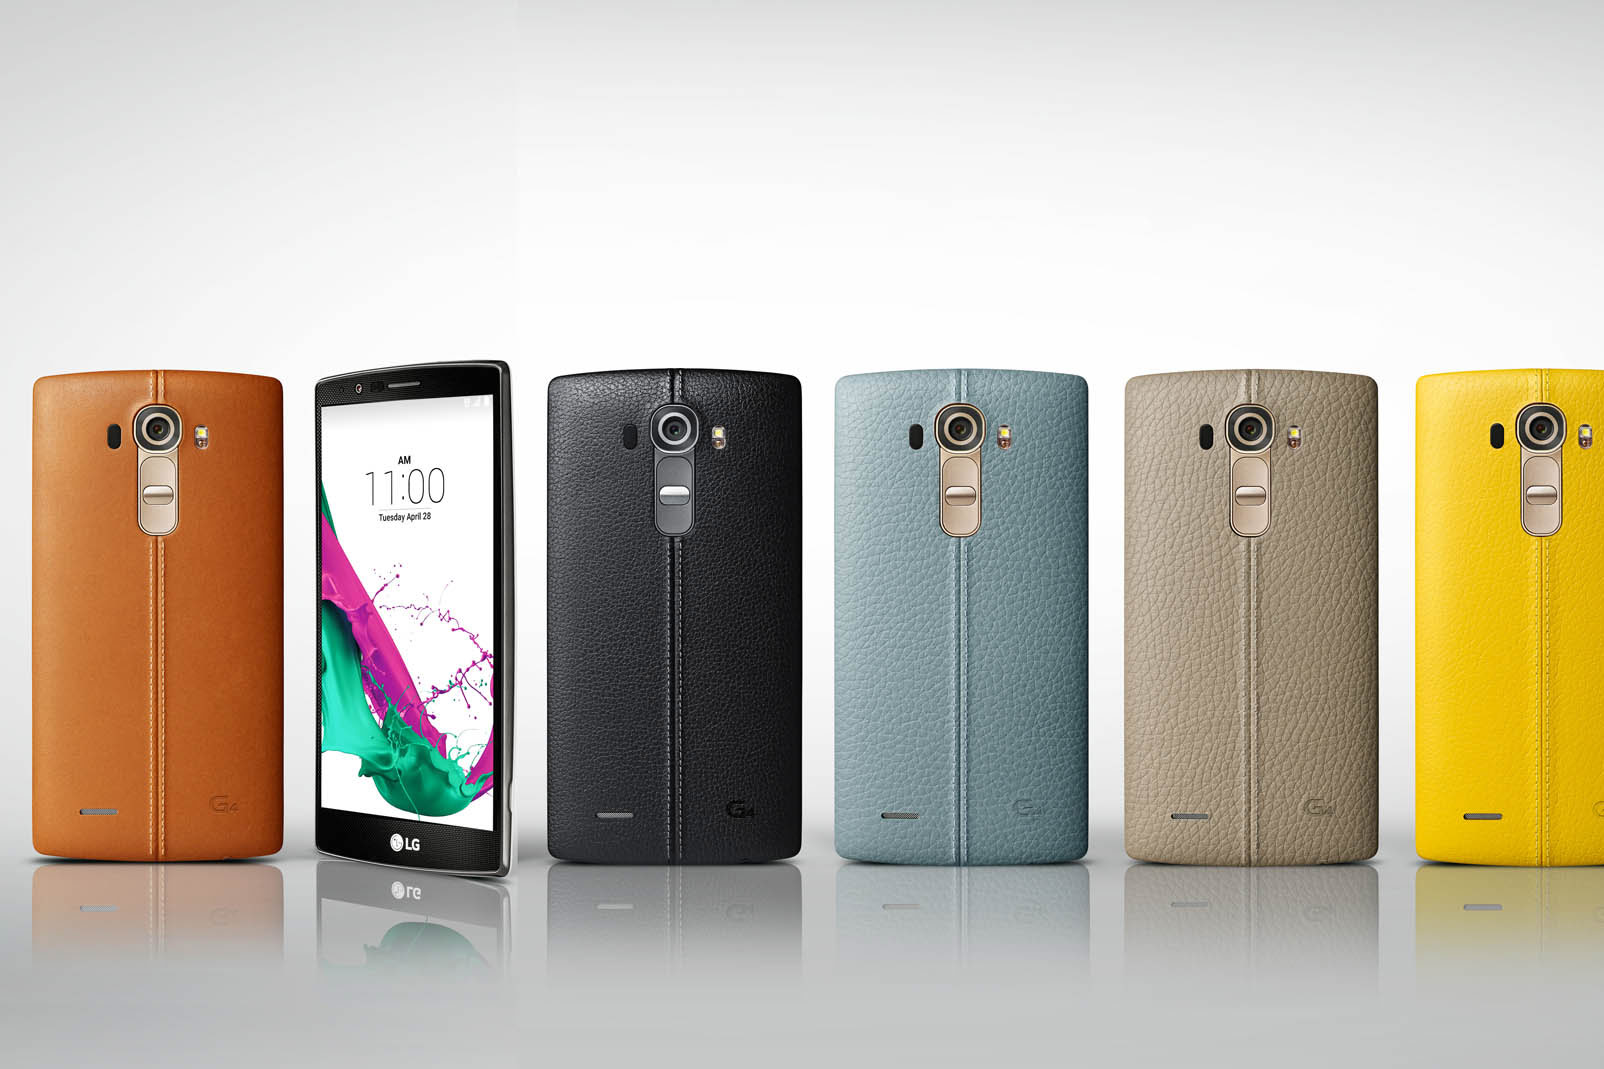 The LG G4 could be the new king of smartphone cameras